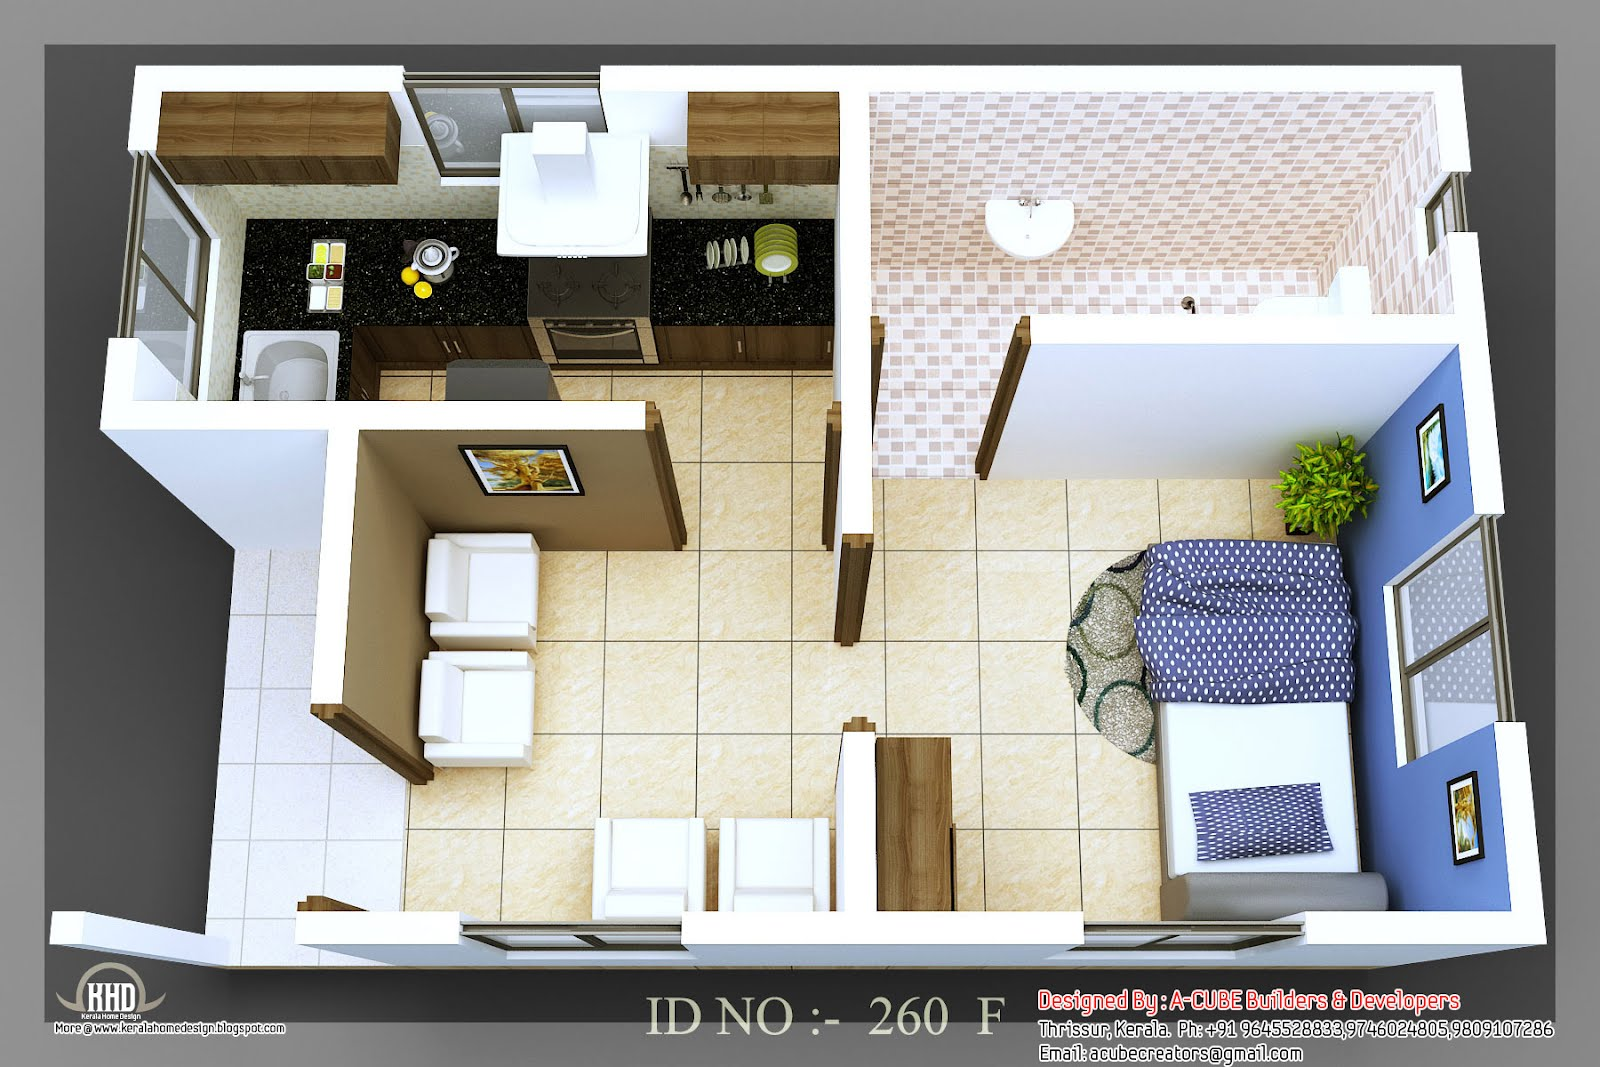 3d isometric views of small house plans home appliance for Small house design pictures